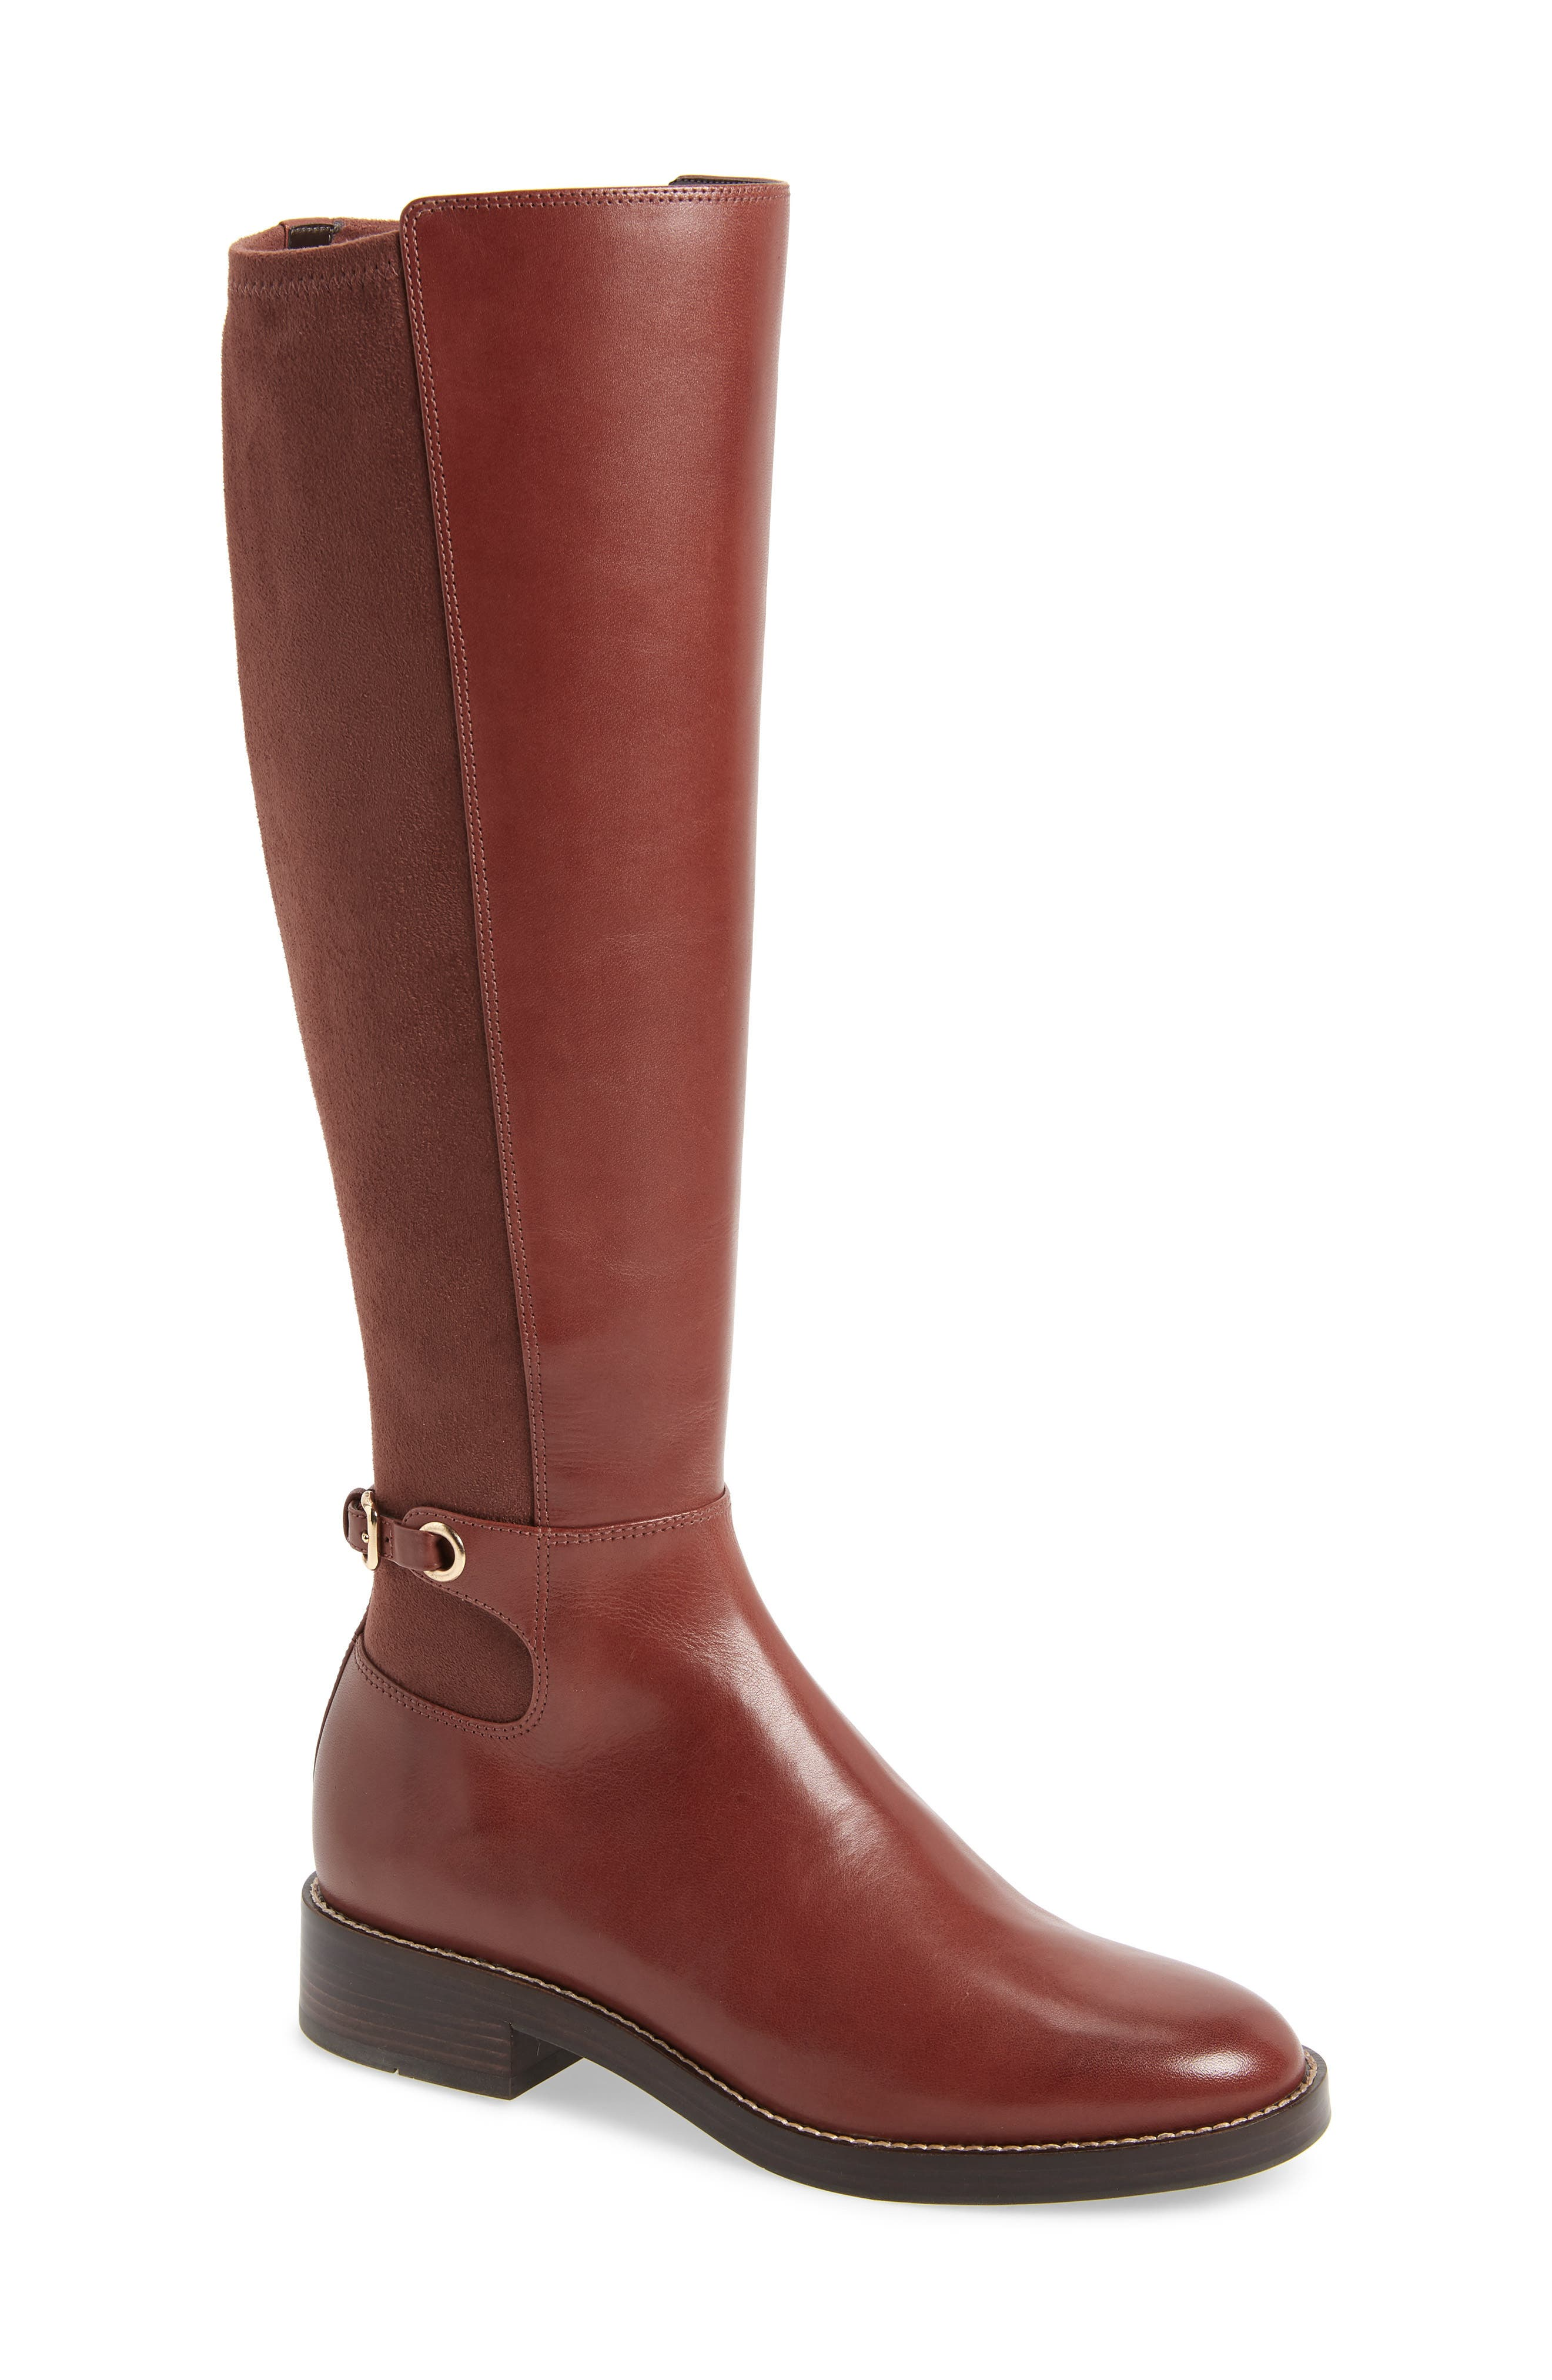 Parker Grand Stretch Knee High Boot,                             Main thumbnail 1, color,                             CHERRY MAHOGANY LEATHER